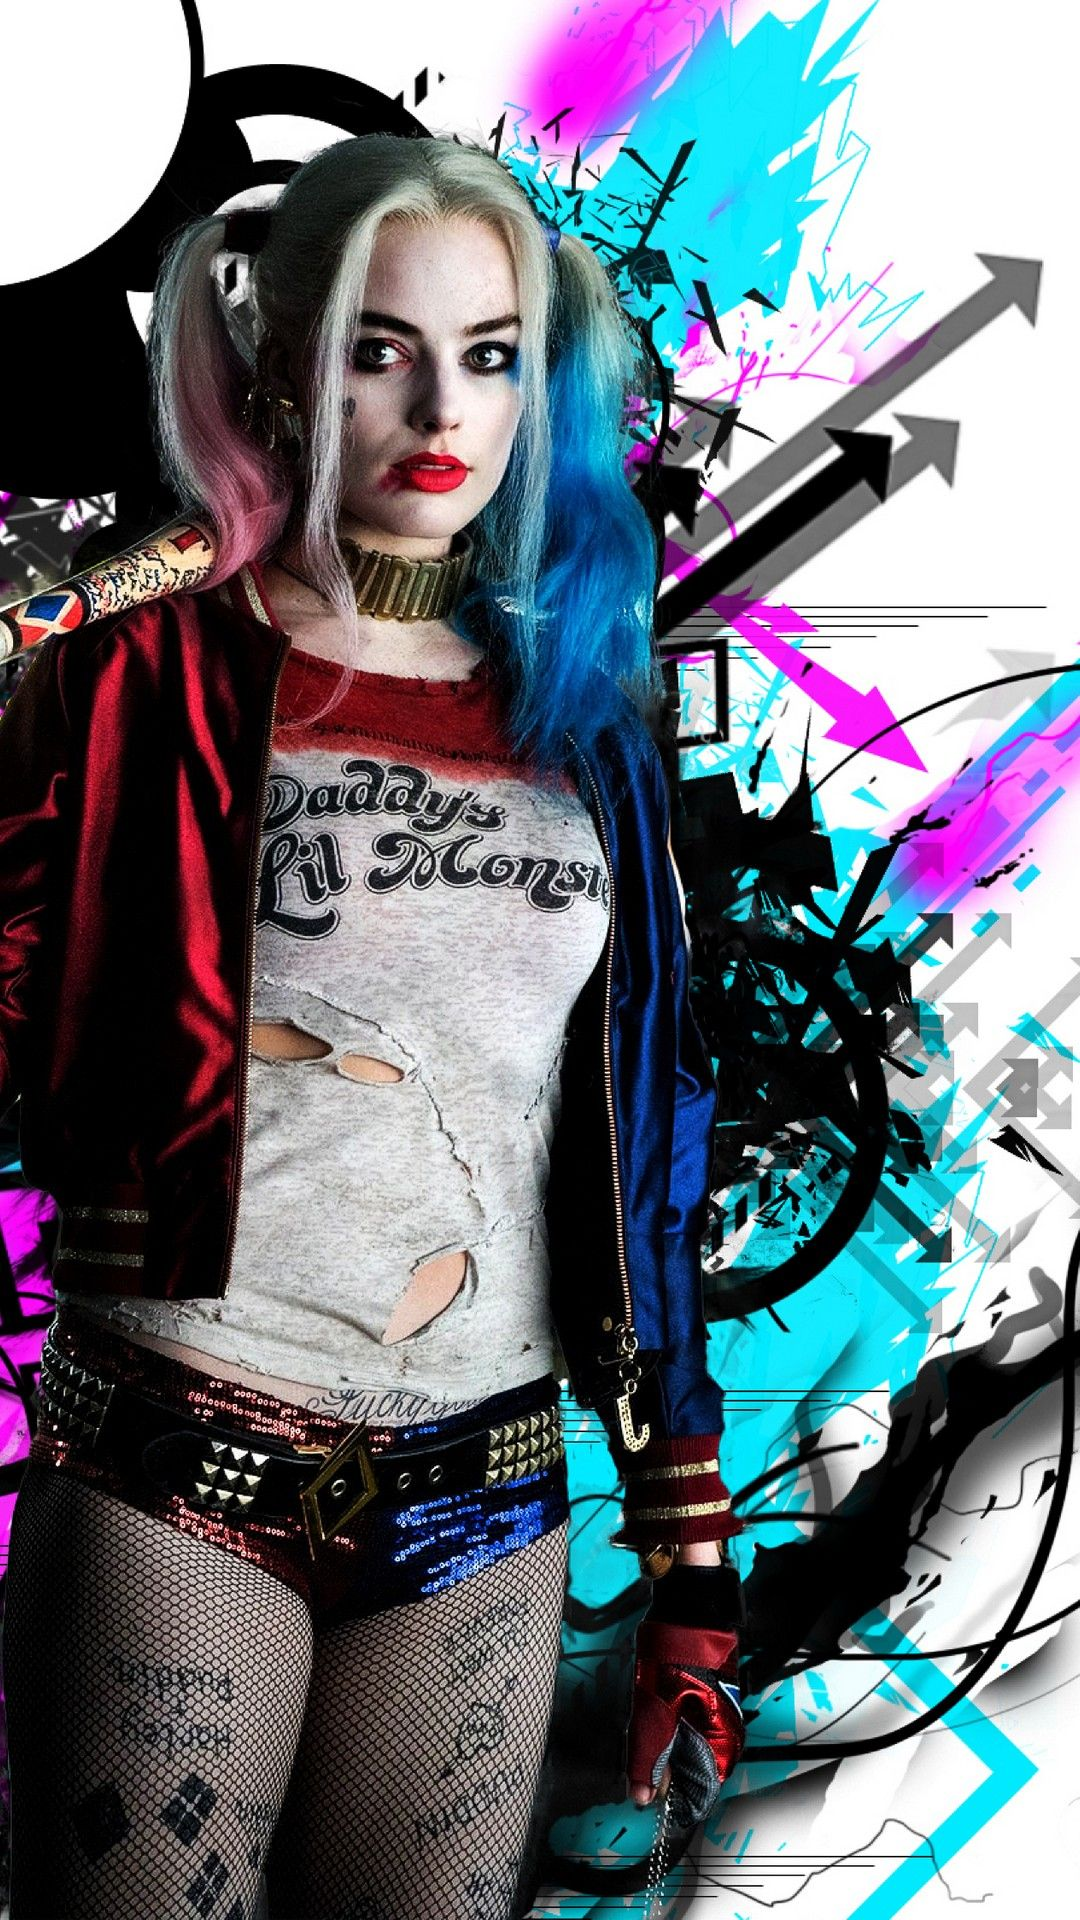 harley quinn pictures hd wallpaper for iphone | best hd wallpapers